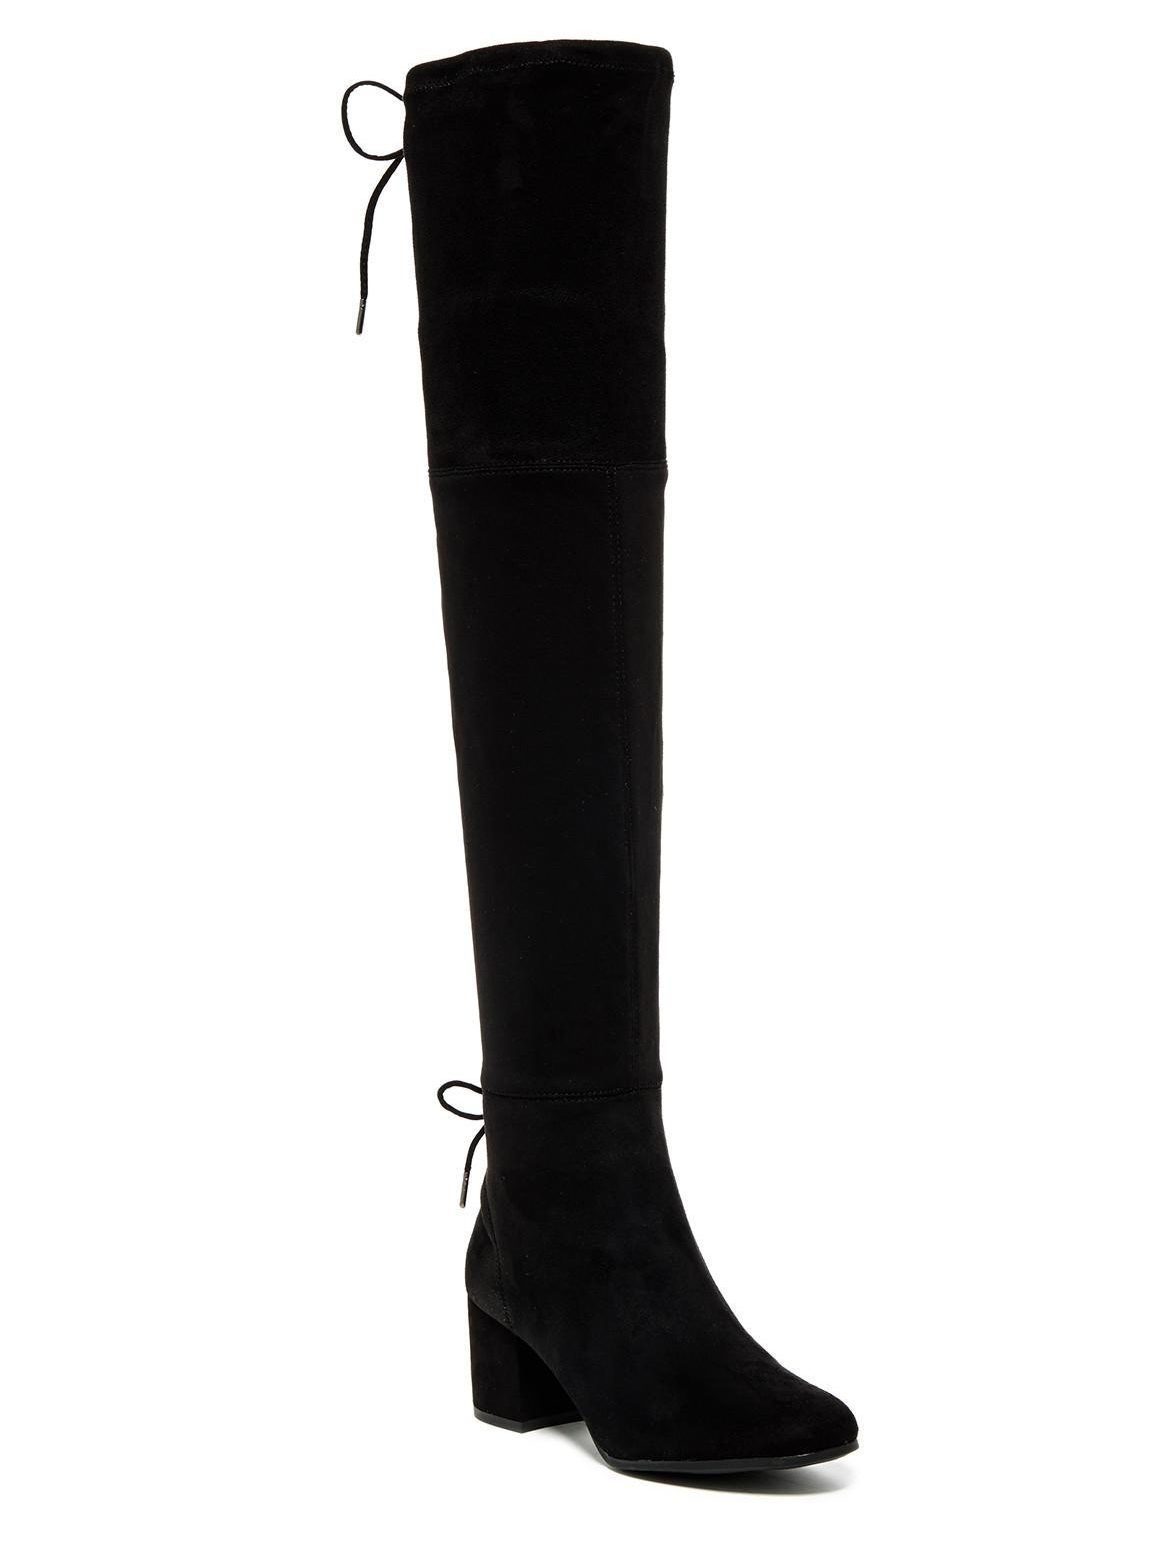 tanger outlets saks off fifth black over the knee boots